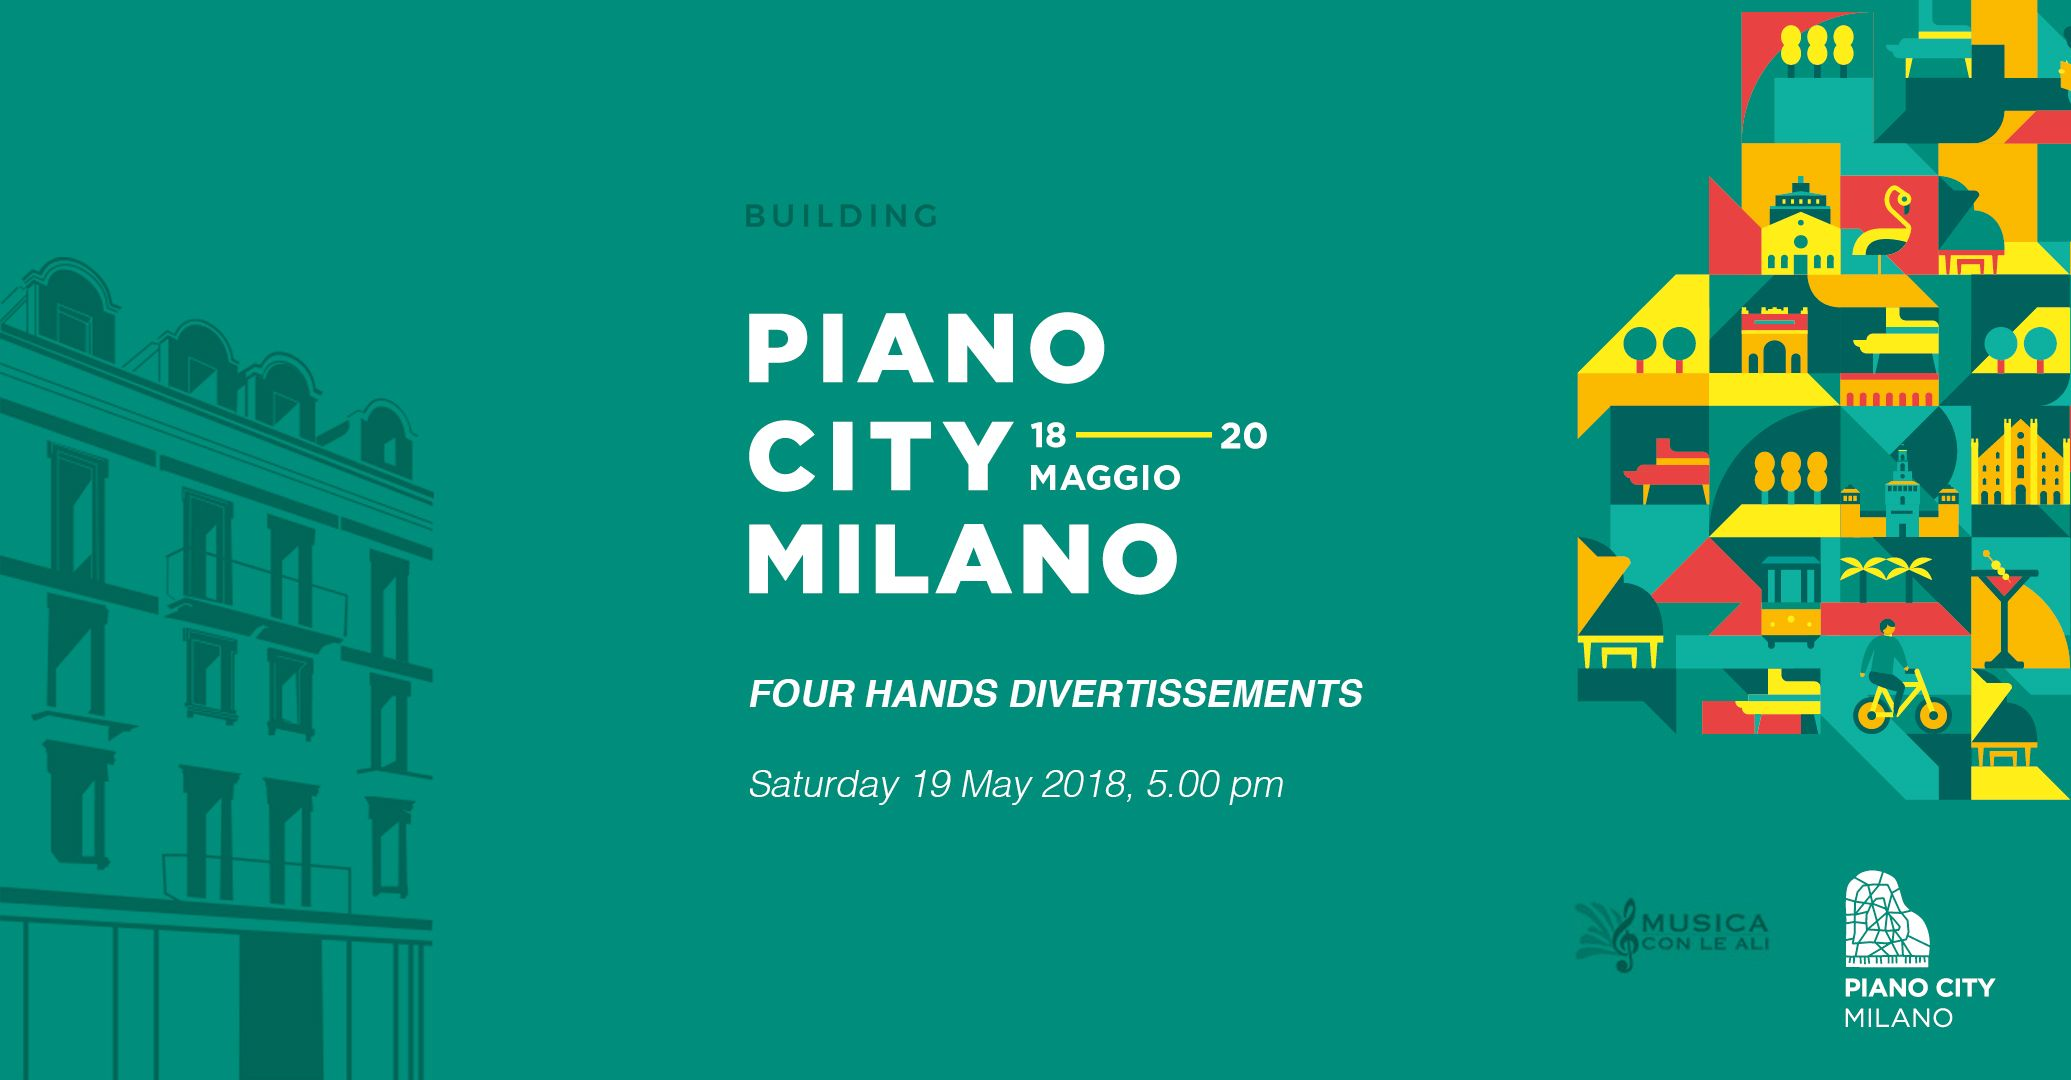 Four Hands Divertissements Piano City Milano 2018